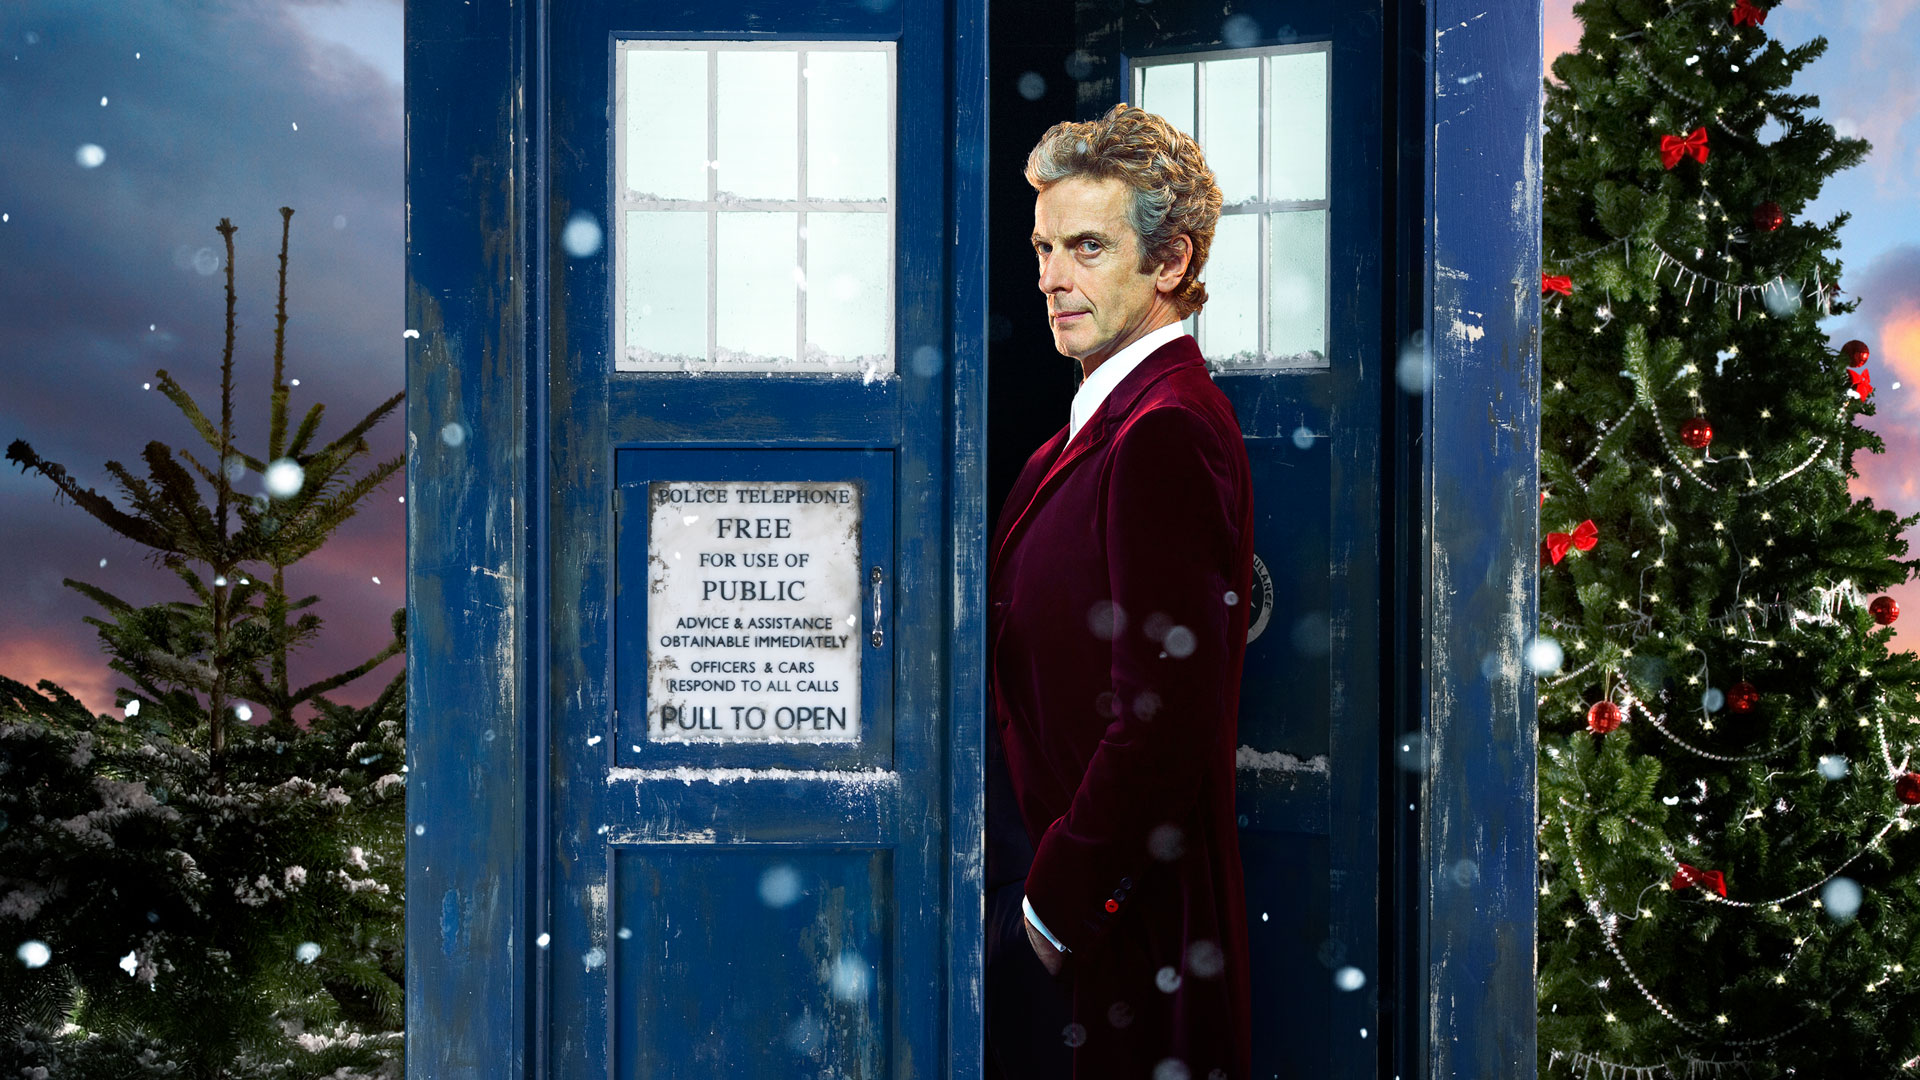 Doctor Who Christmas Special 2020 Full Episode Doctor Who Christmas Episode 2020 Movies | Vwxdrn.mynewyear2020.info